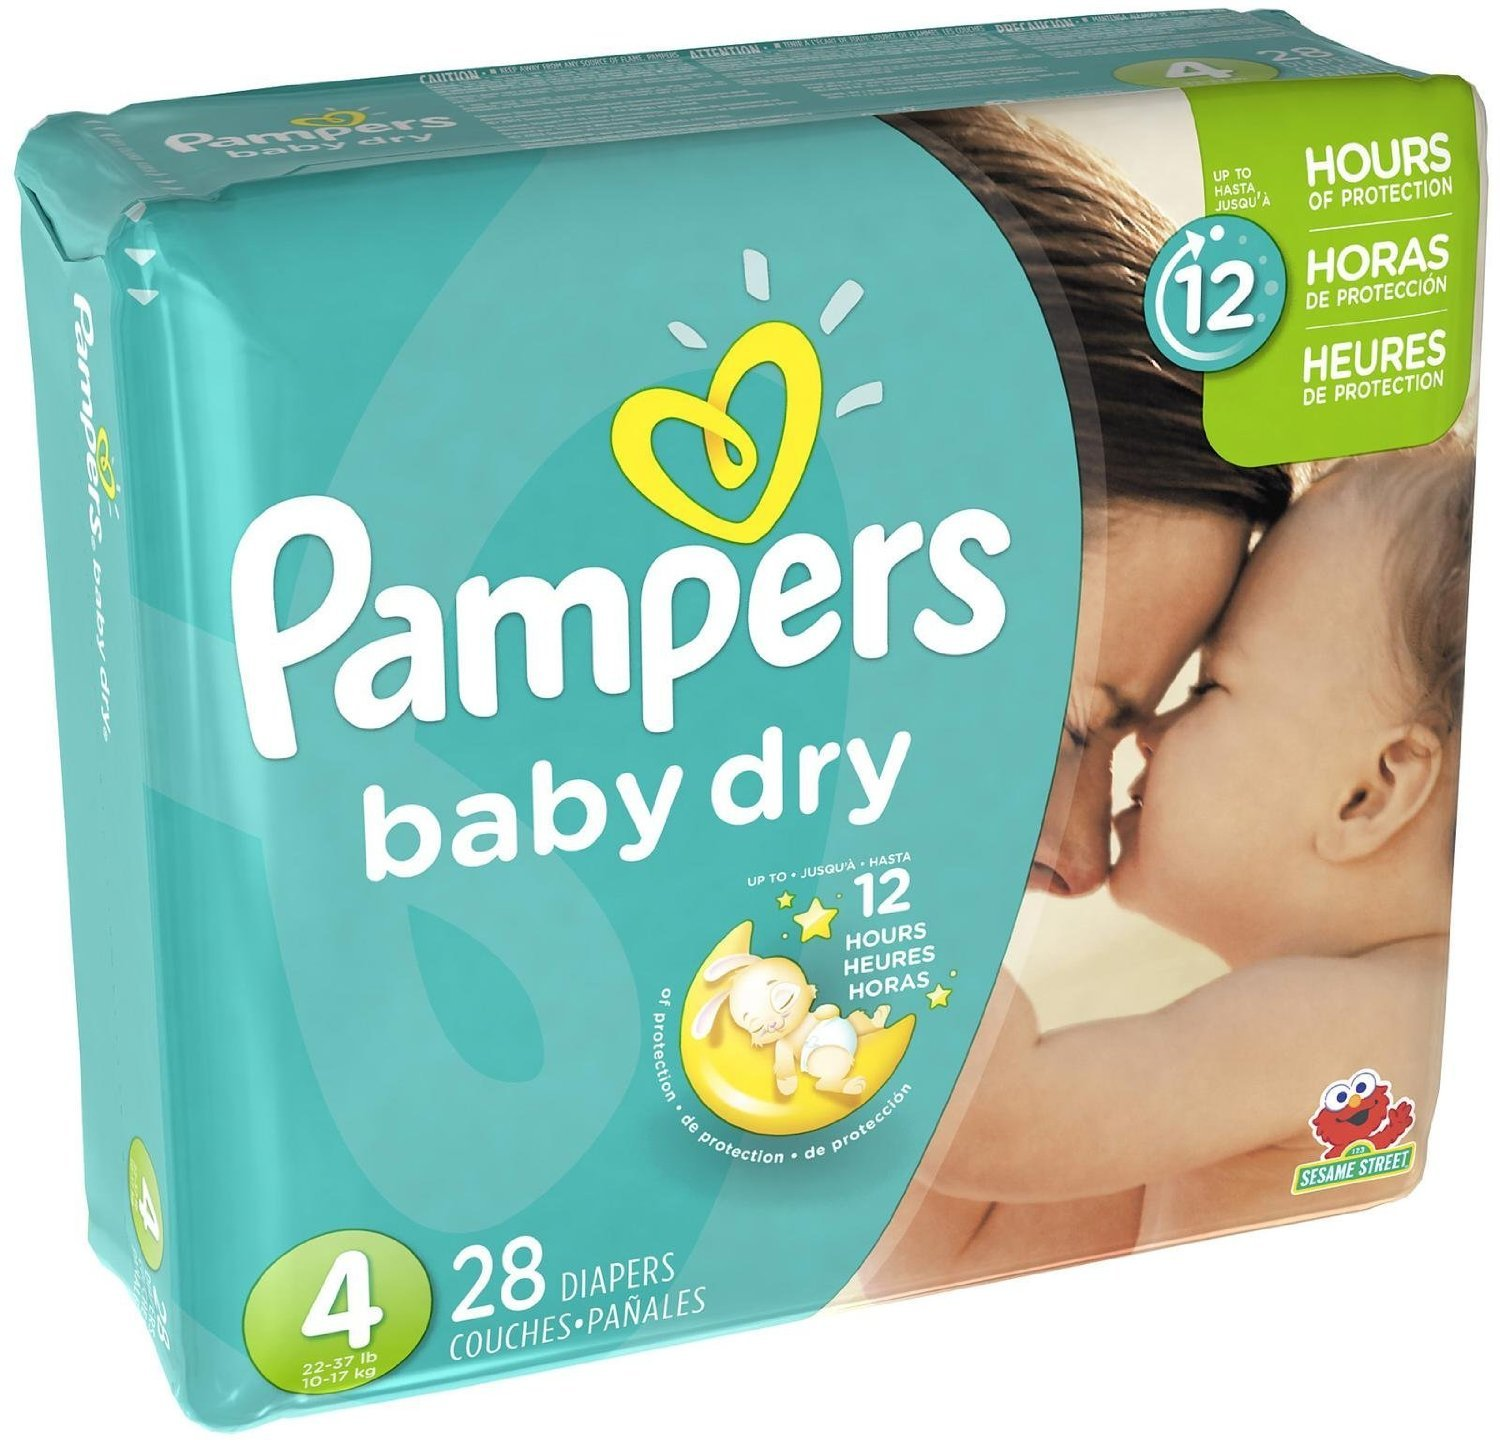 Amazon.com: Pampers Baby Dry Diapers - Size 4 - 24 ct: Health & Personal Care